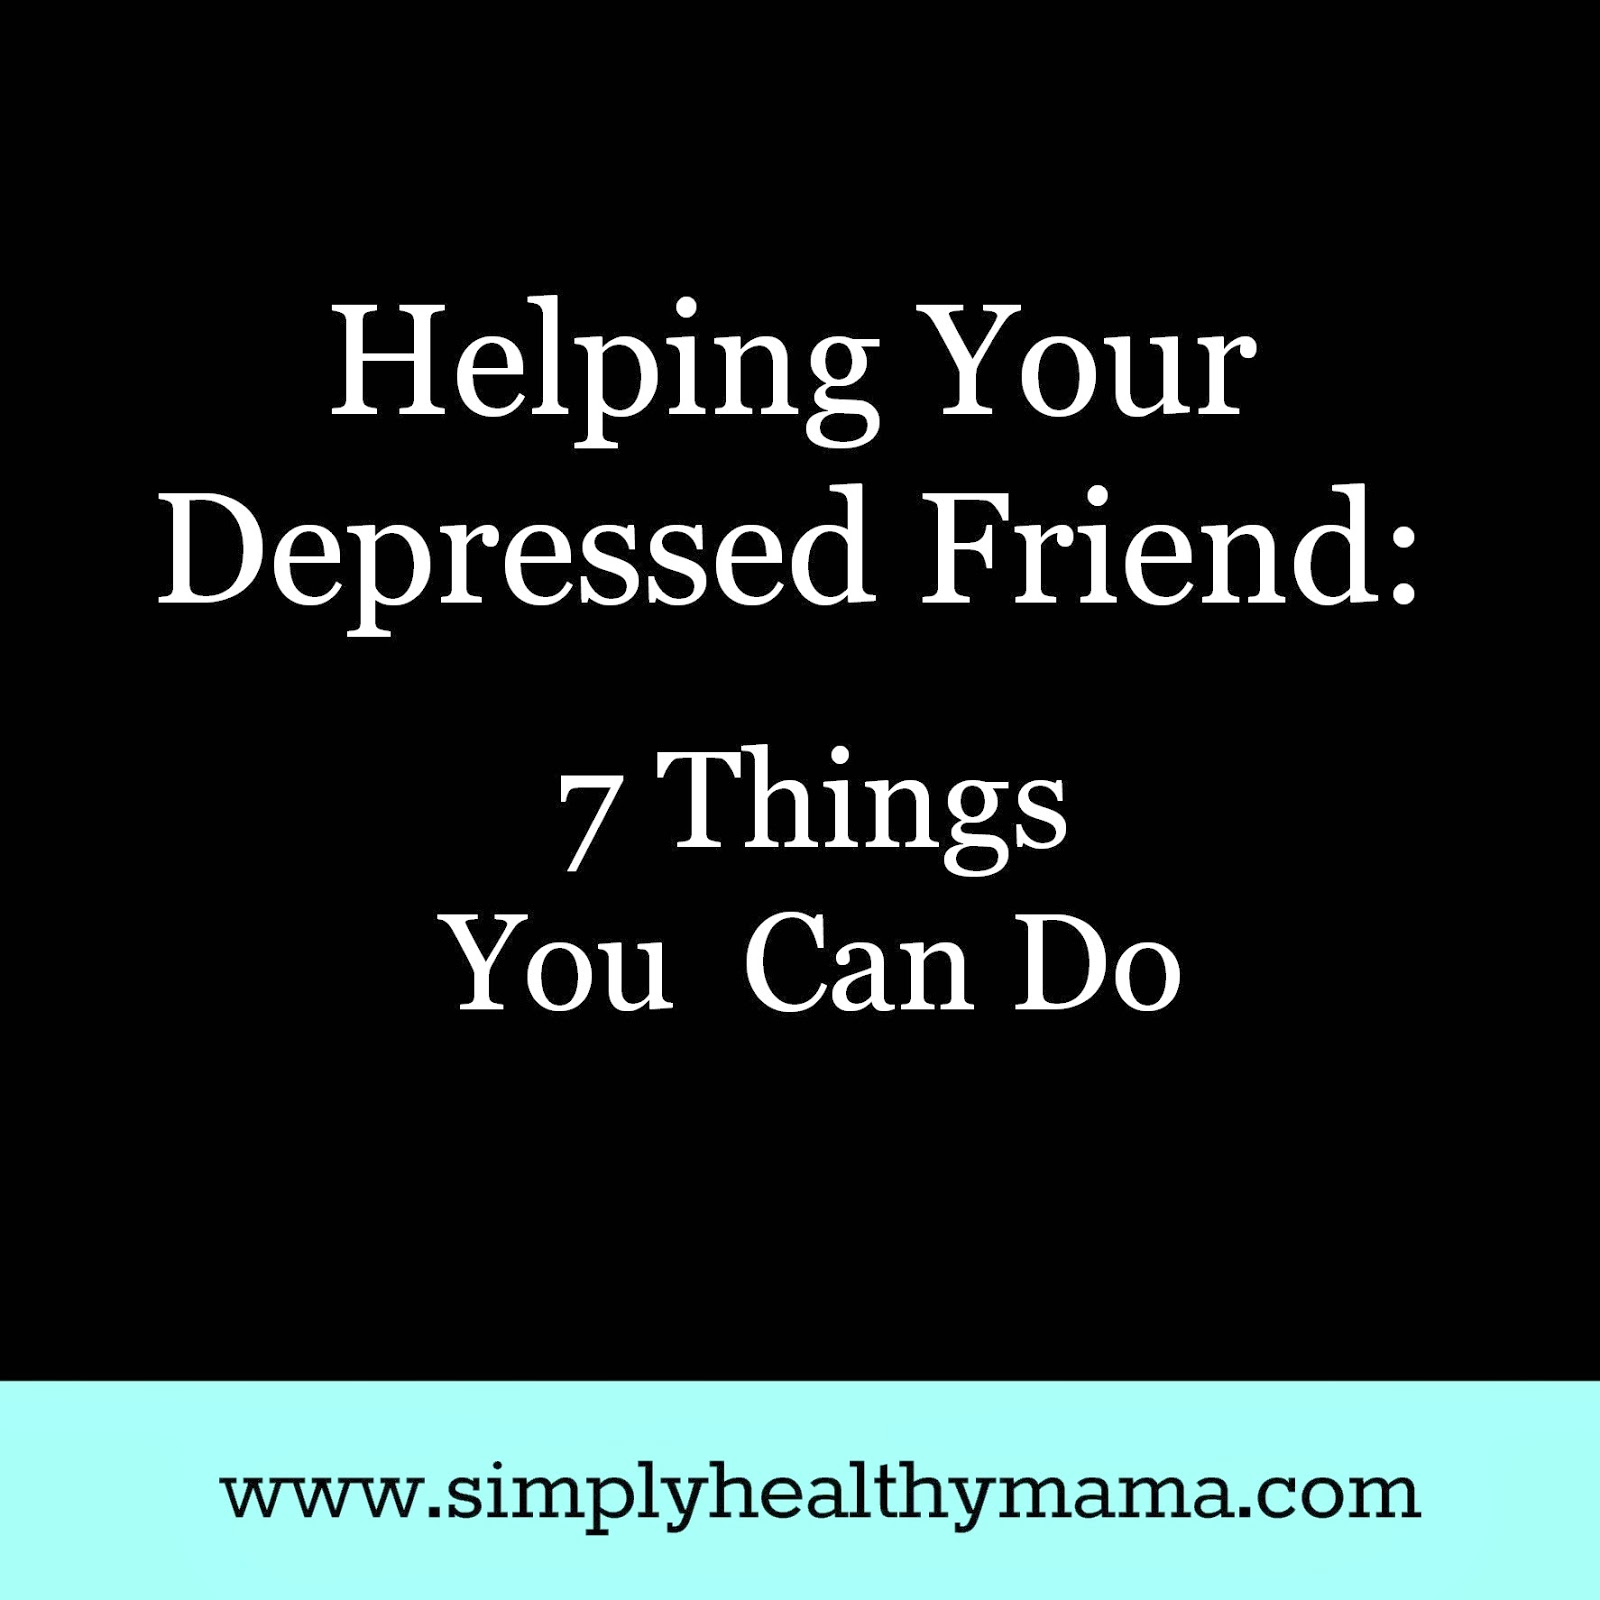 81 Depression Quotes To Help In Difficult Times: Depressing Quotes About Being Lonely. QuotesGram